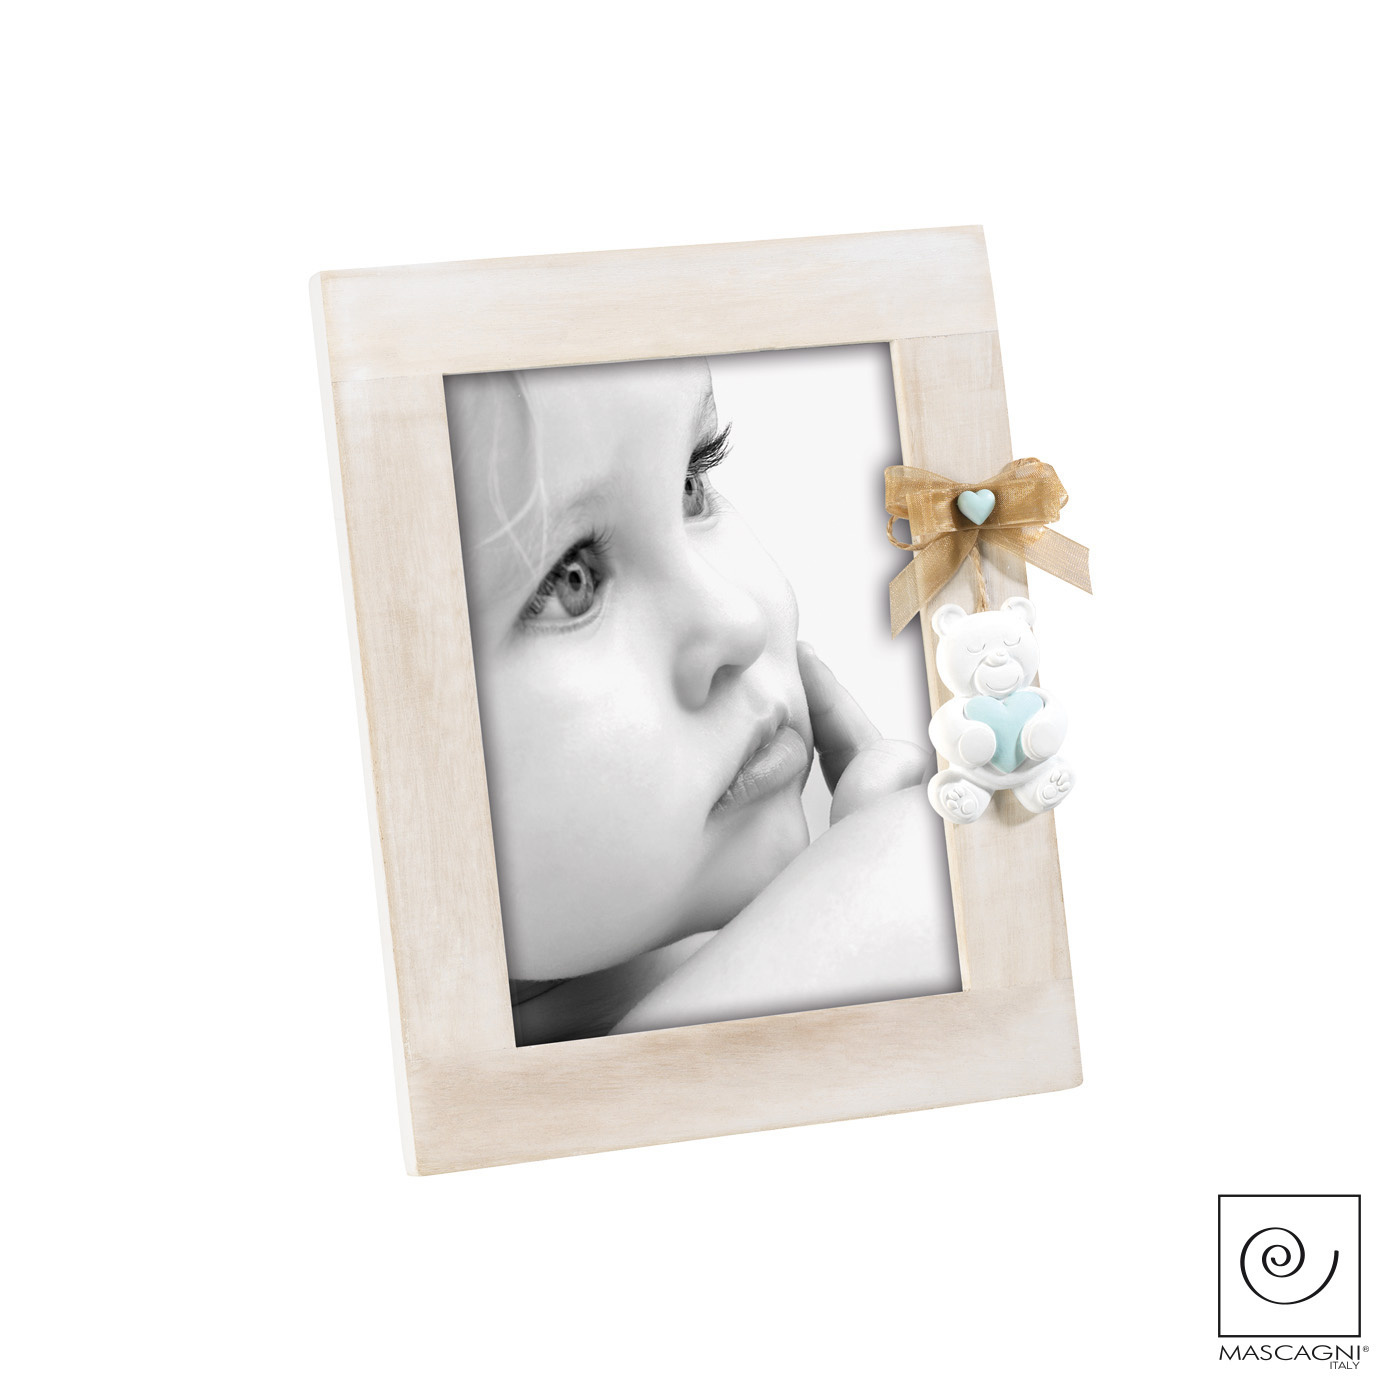 Art Mascagni A957 PHOTO FRAME 10X10 - COL.BLUE